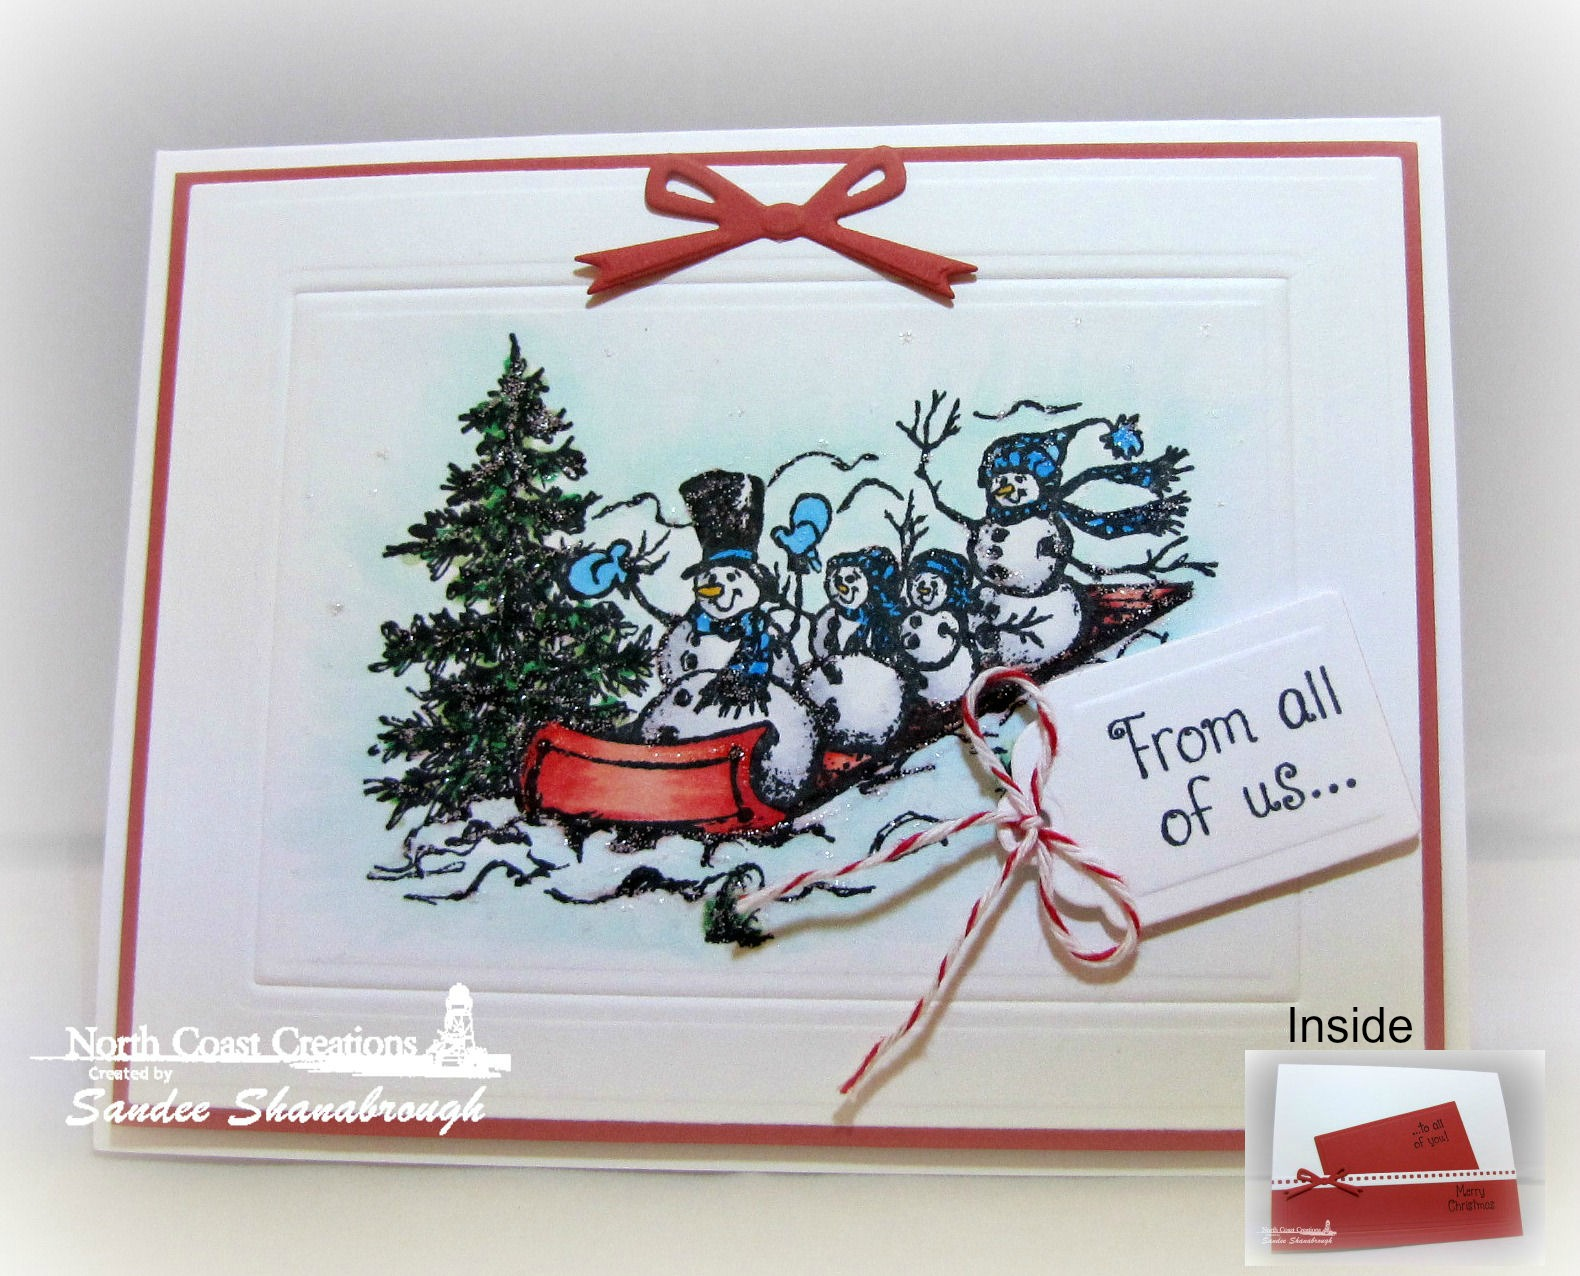 Stamps - North Coast Creations Snowman Family, ODBD Custom Recipe Card and Tags Dies, ODBD Custom Beautiful Borders Dies, ODBD Custom Circle Ornaments Die